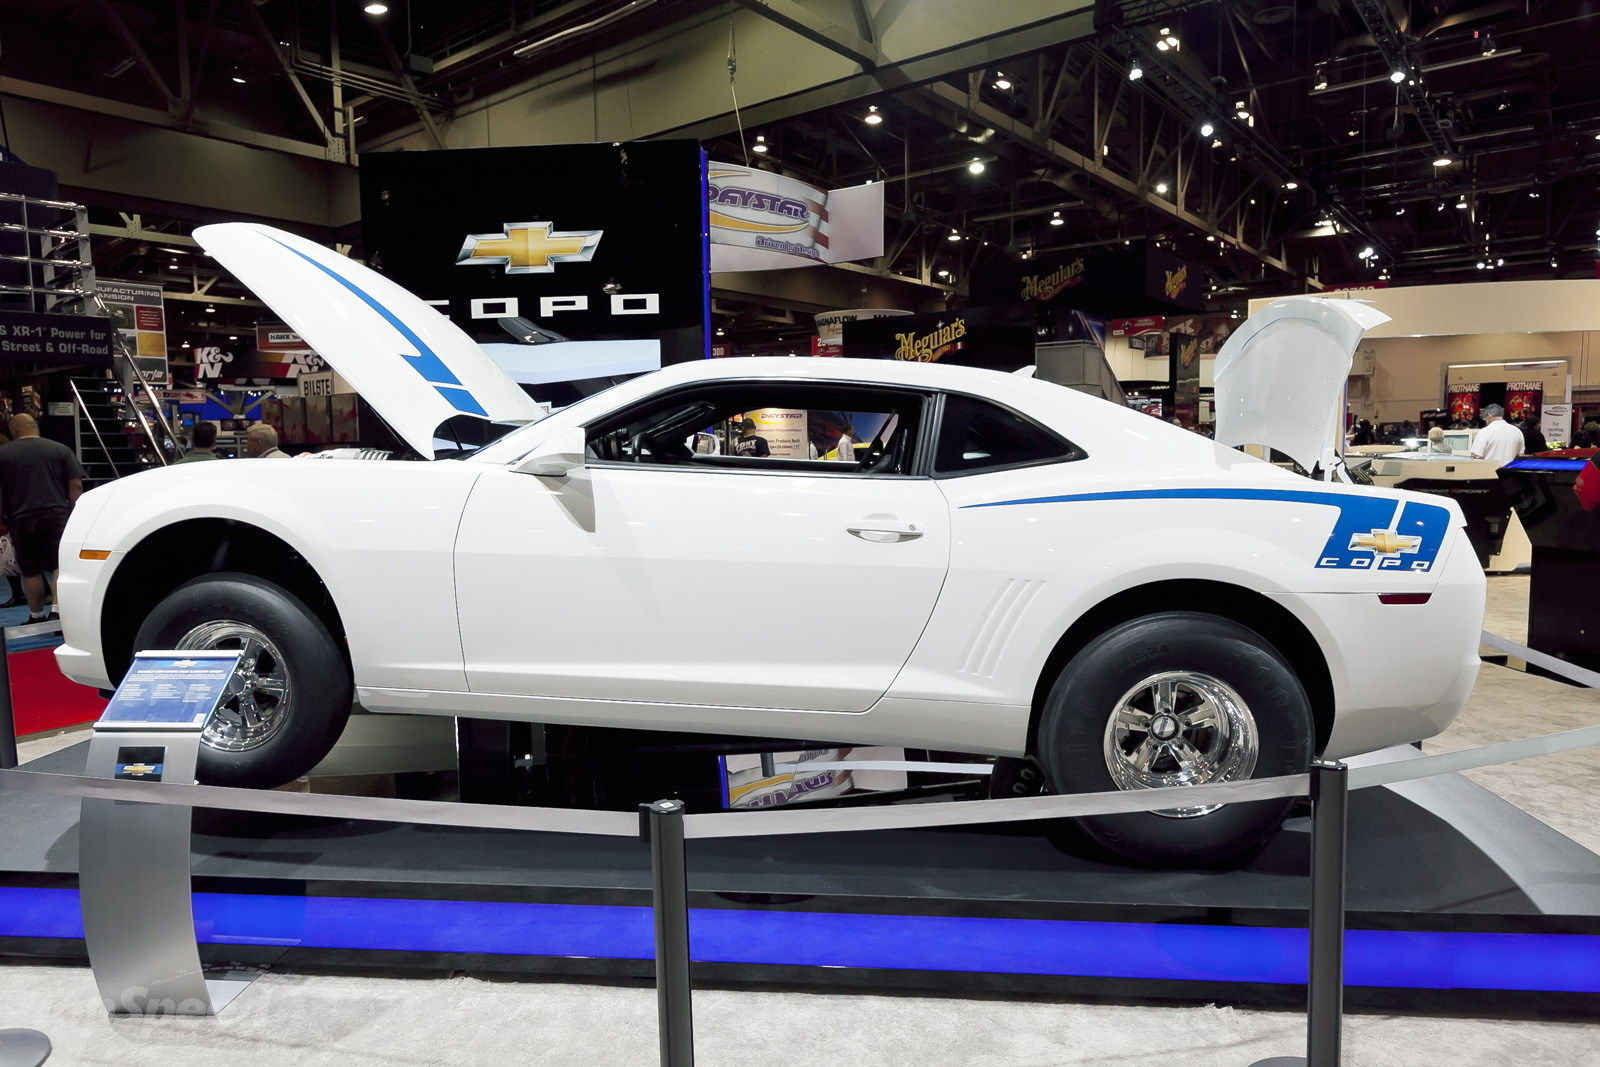 2012 chevrolet copo camaro concept sport cars and. Cars Review. Best American Auto & Cars Review